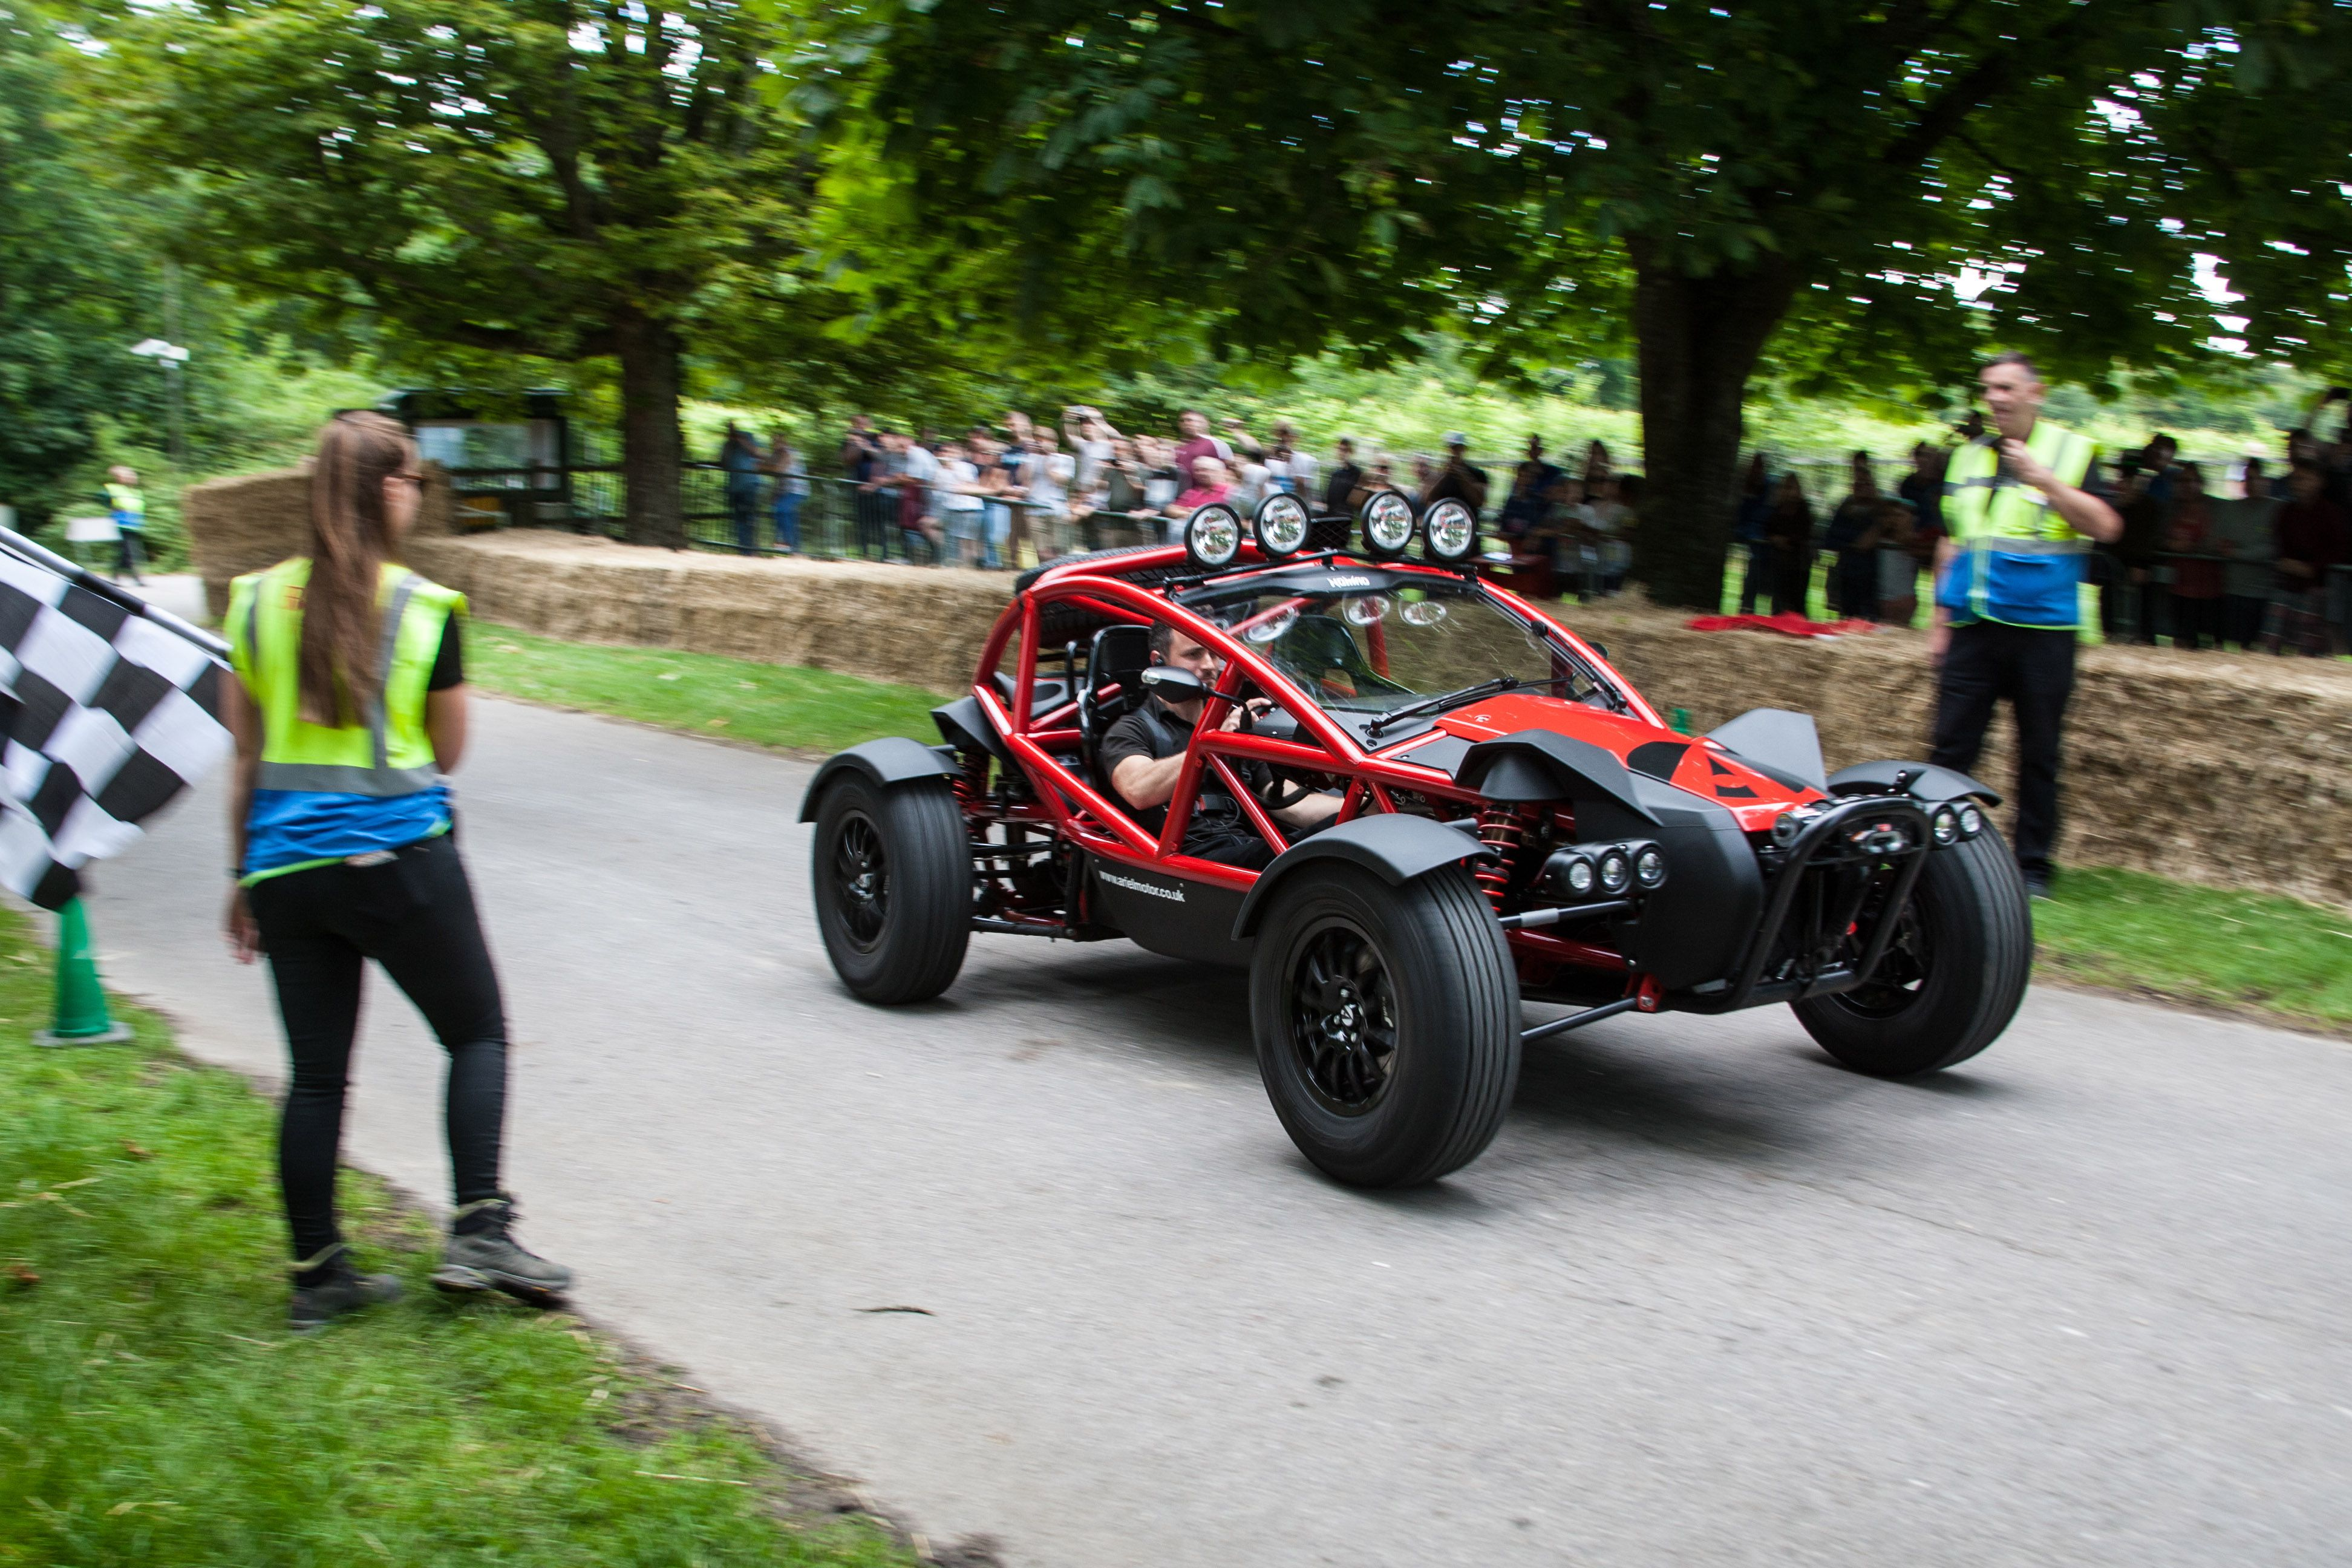 Red Ariel Nomad